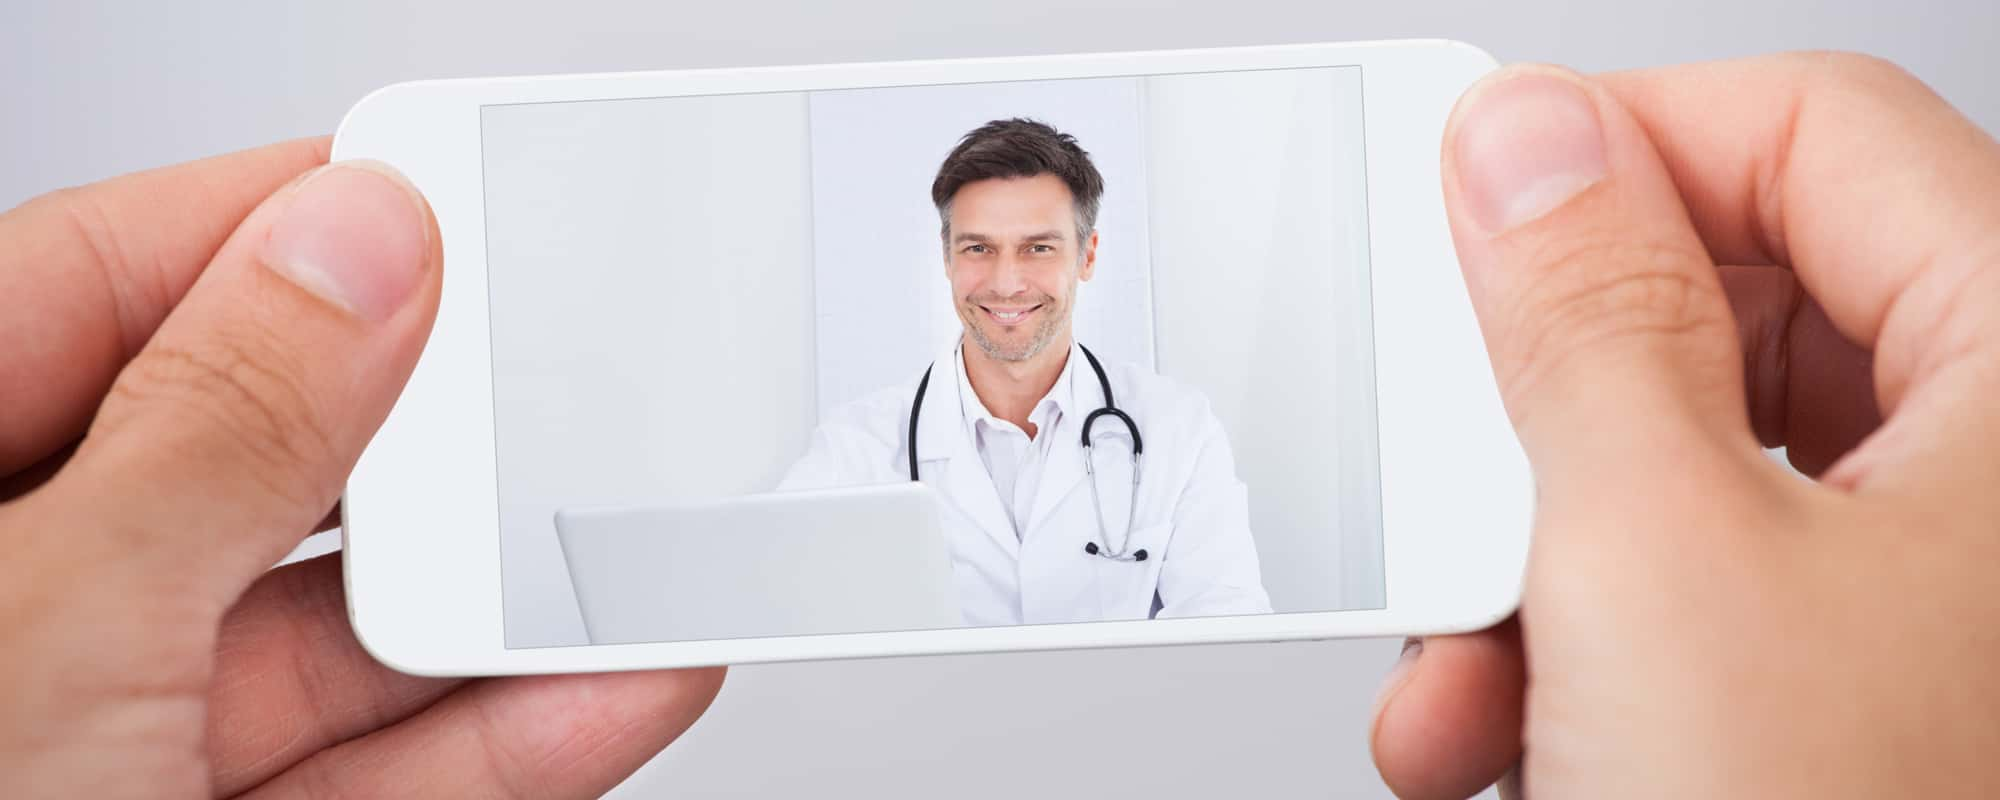 Telehealth Rapidly Increasing in Workers' Compensation